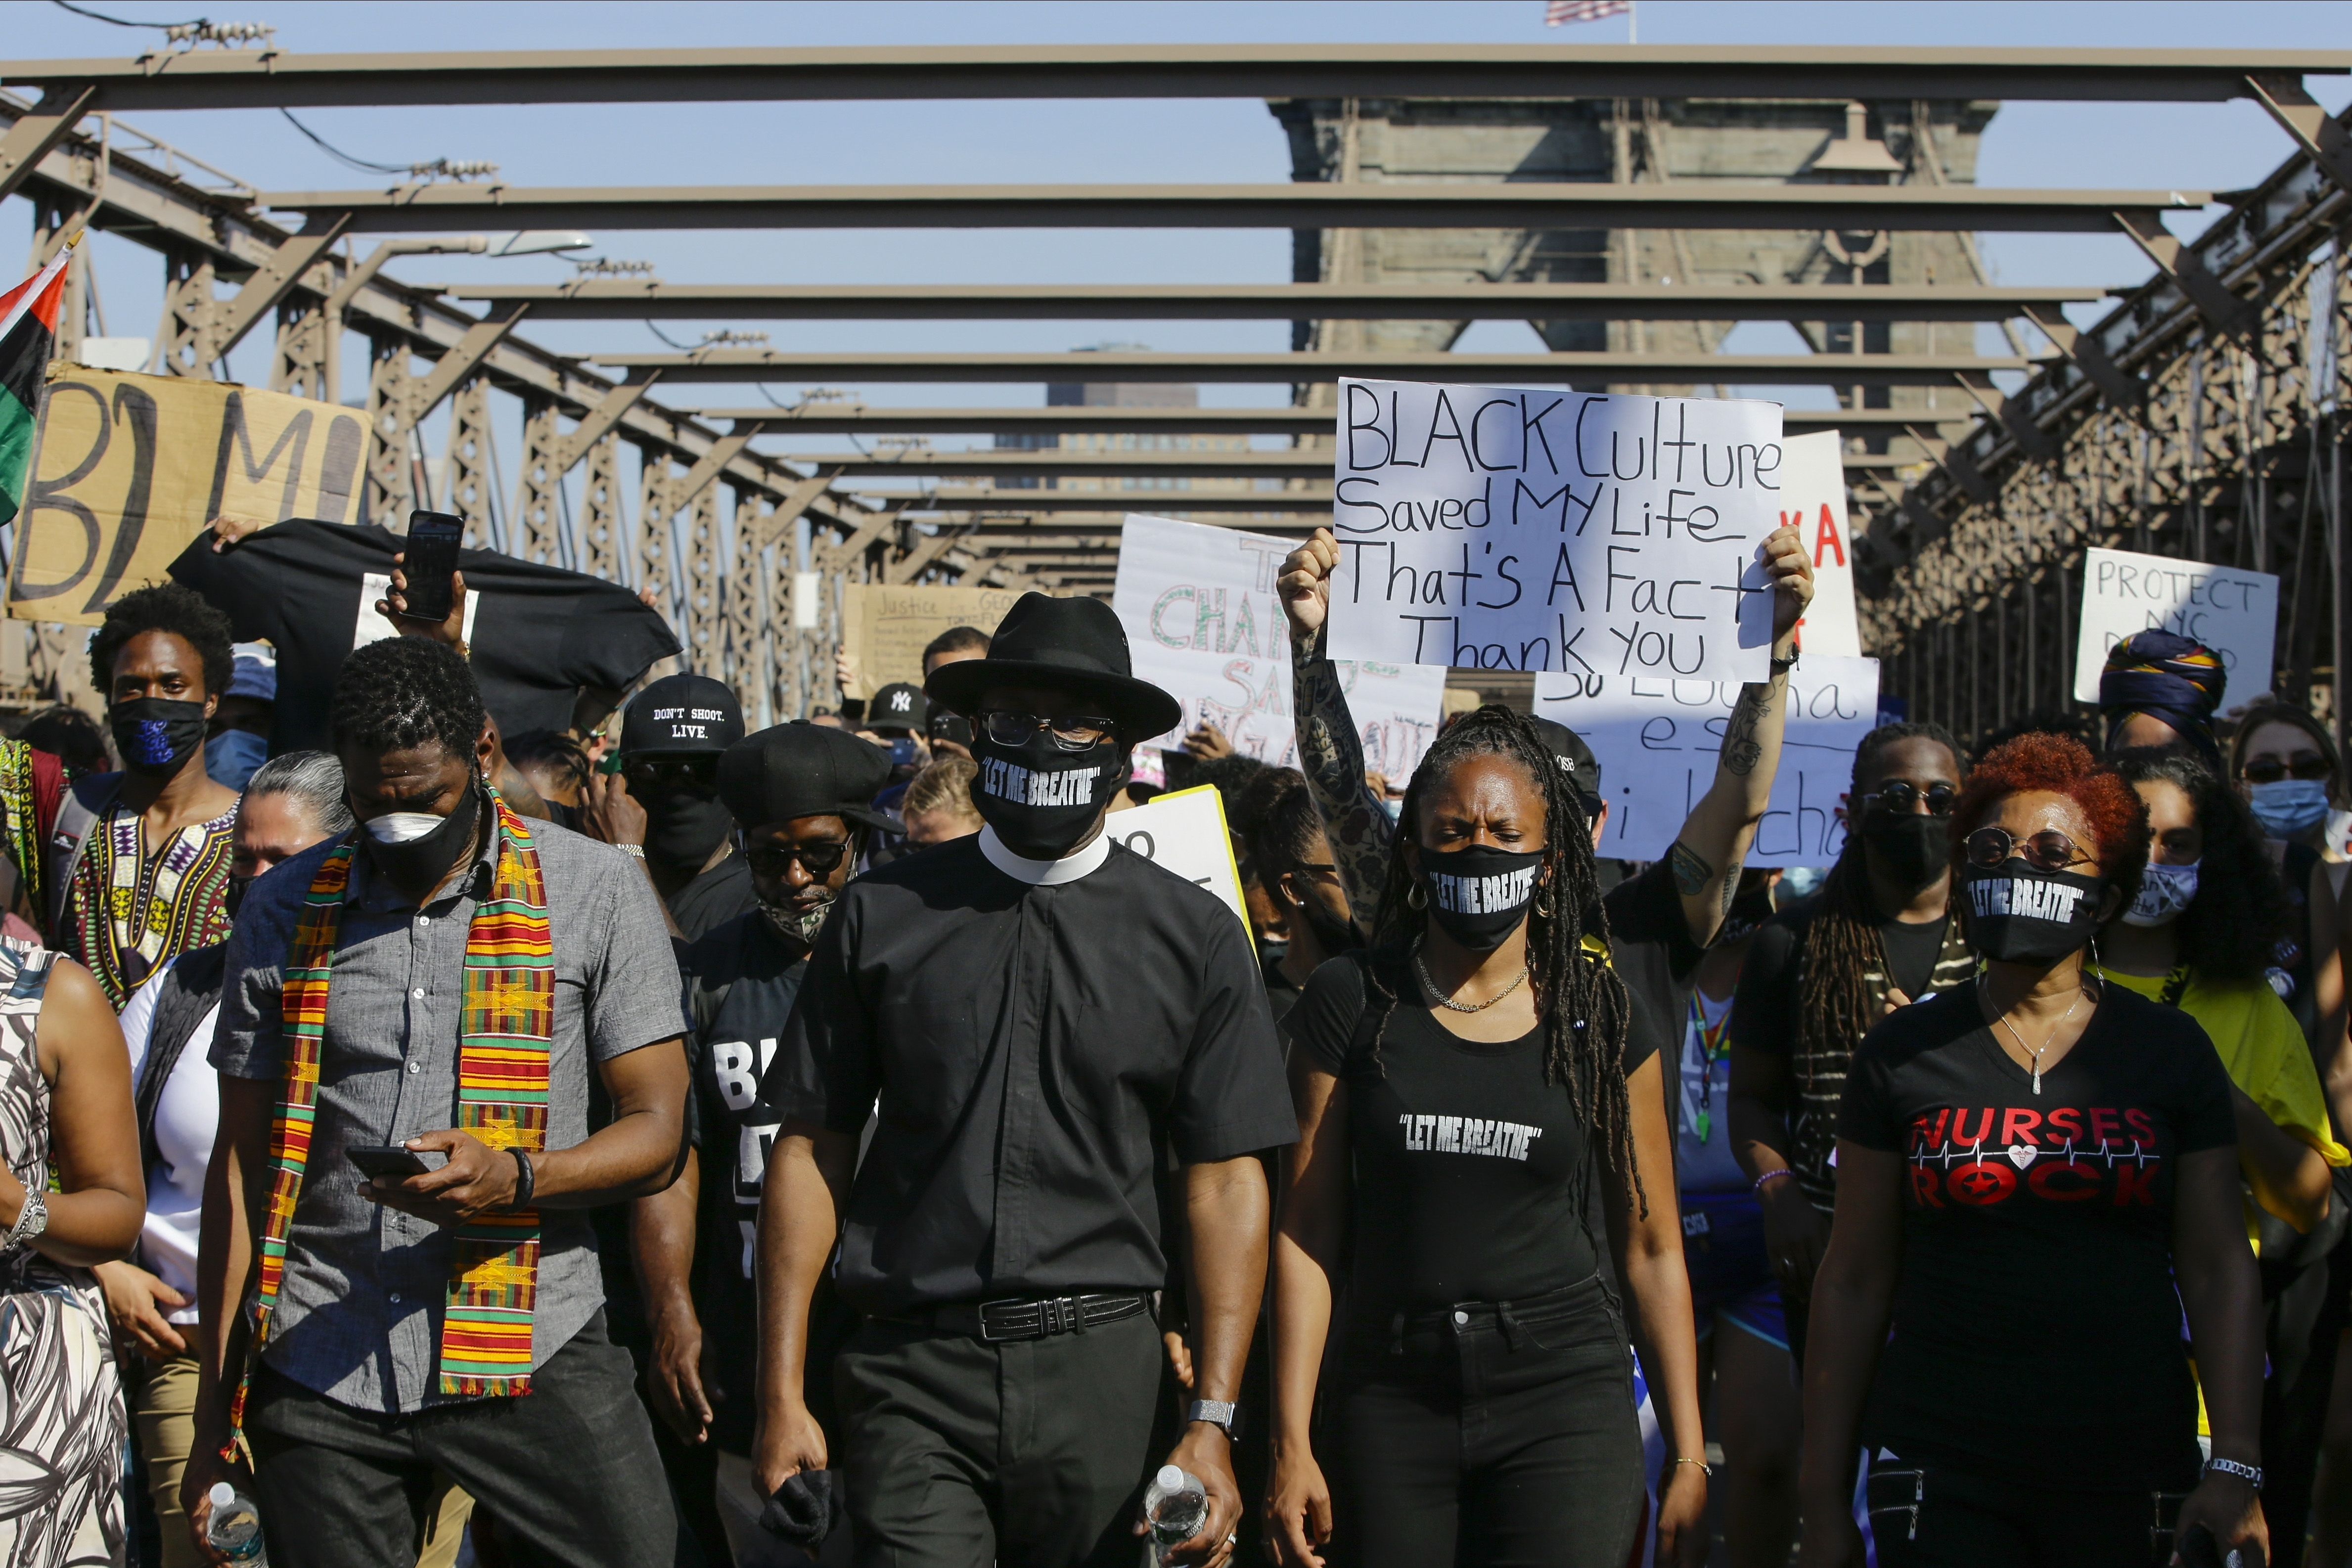 Protesters march across the Brooklyn Bridge as part of a solidarity rally June 9, calling for justice over the death of George Floyd, and to highlight police brutality nationwide.